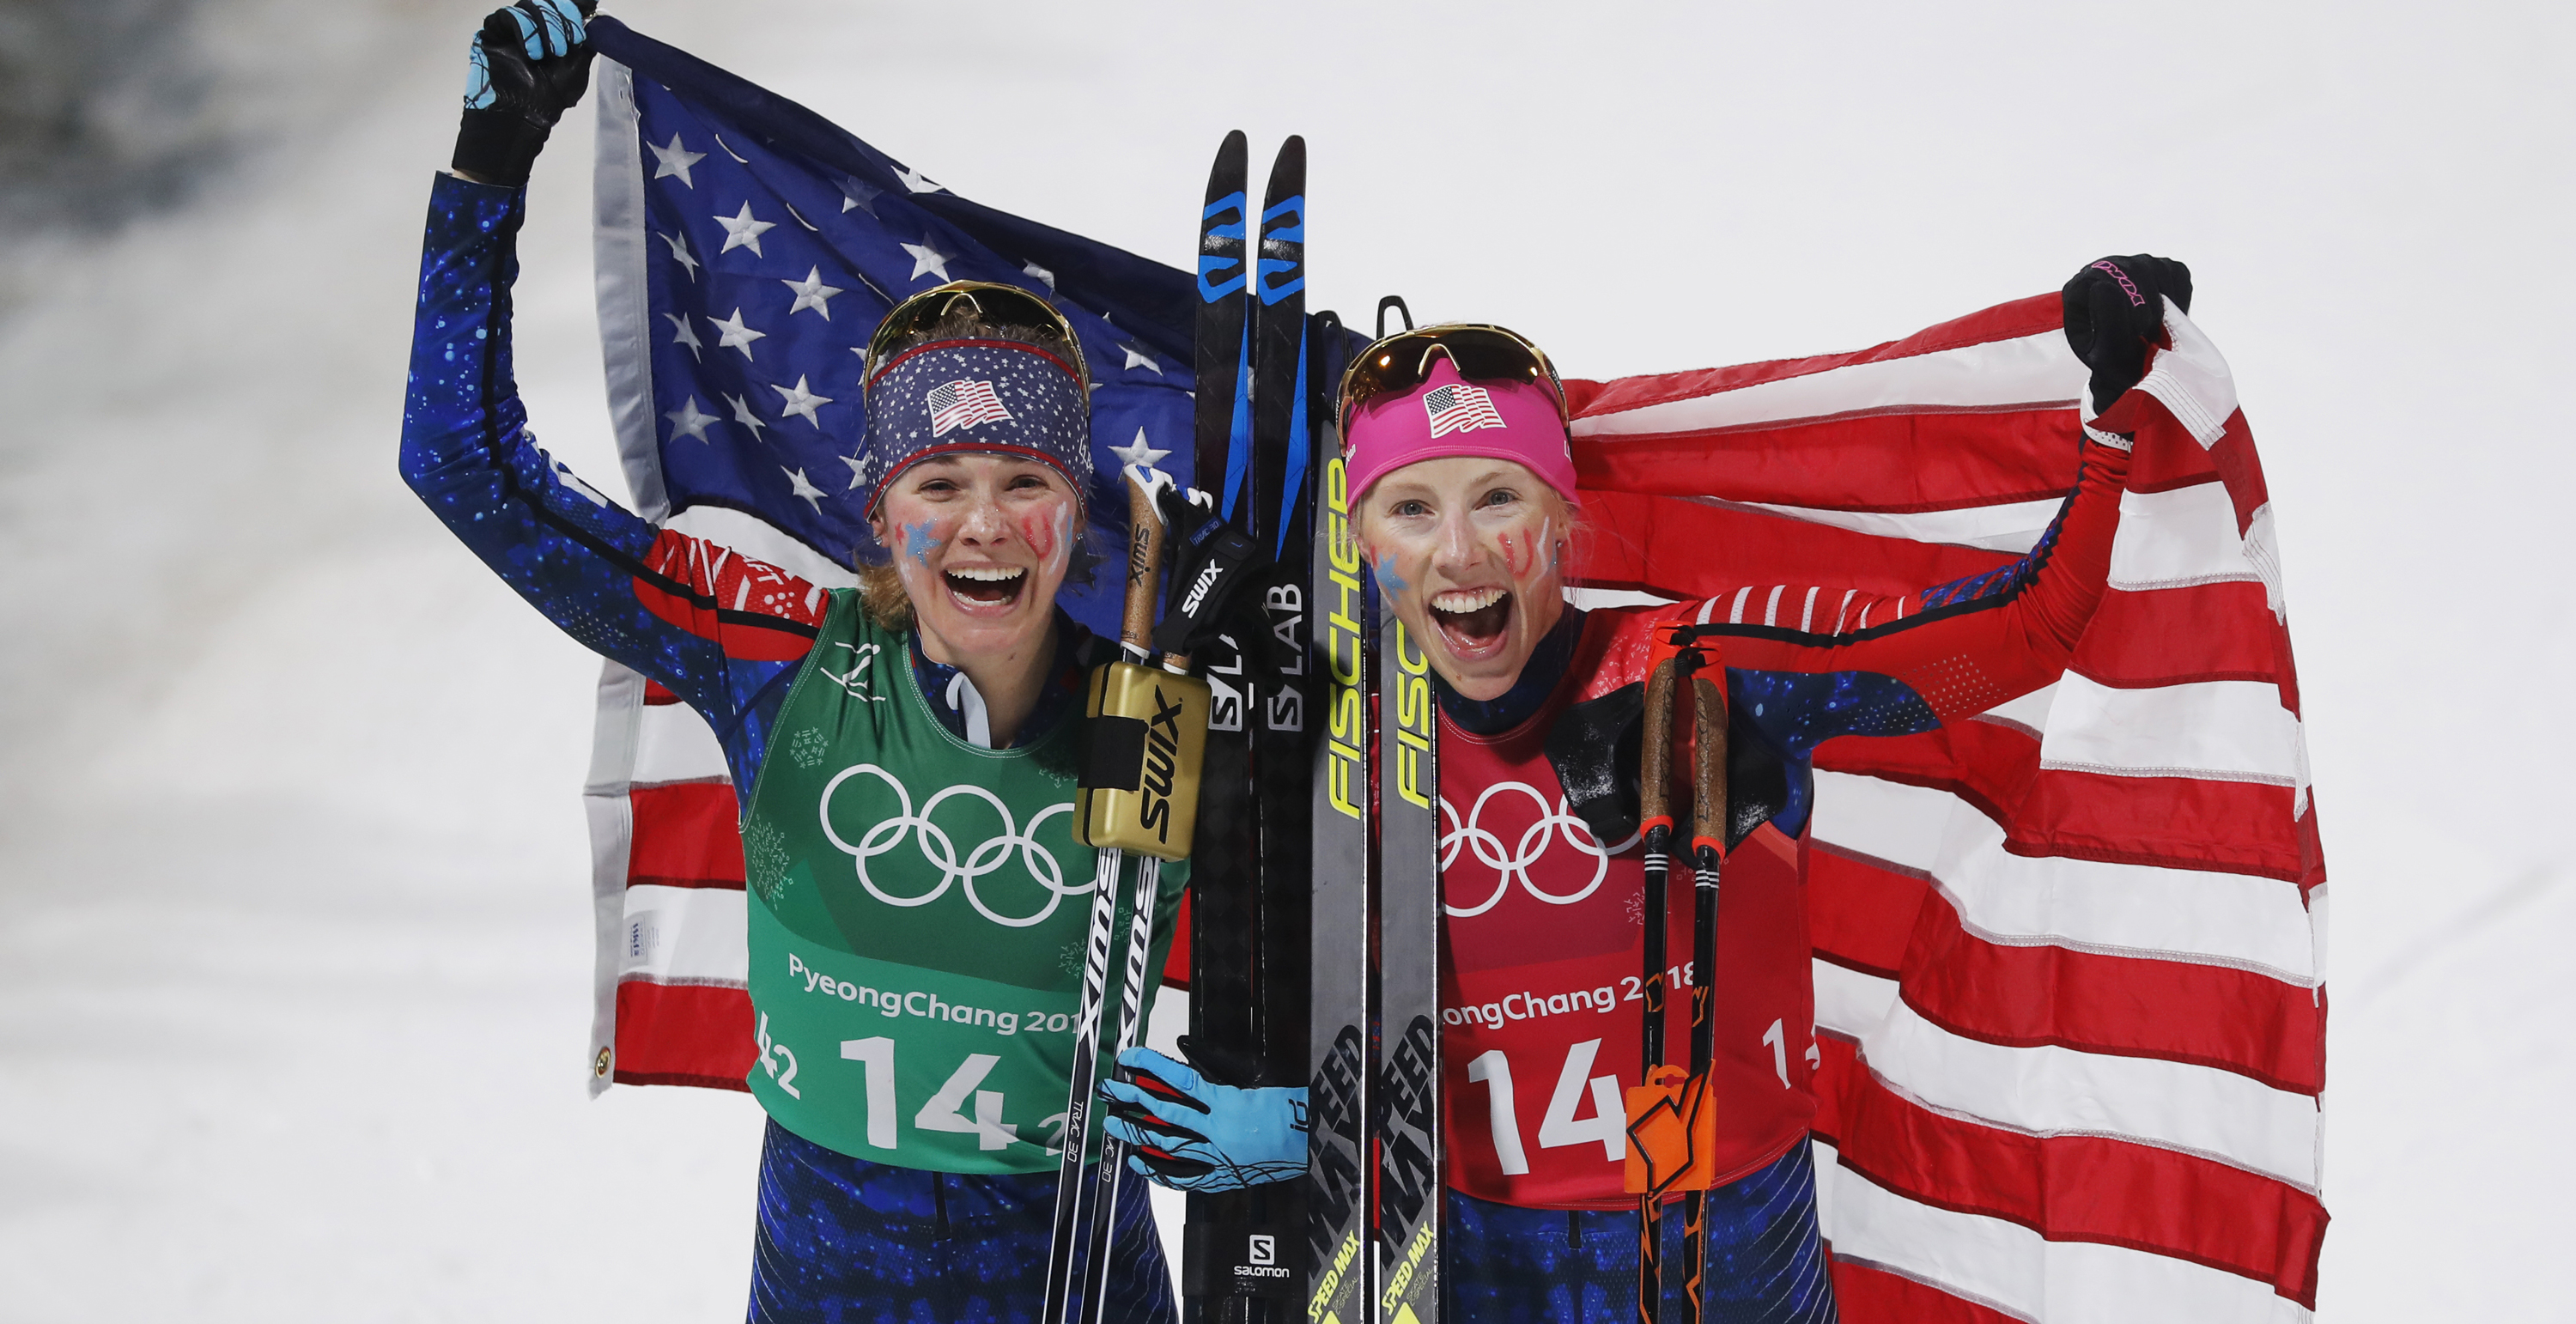 Kikkan Randall and Diggins Jessica celebrate winning gold during the women's Cross Country team sprint at Alpensia Cross-Country Centre Wednesday. (Getty Images - Nils Petter Nilsson)